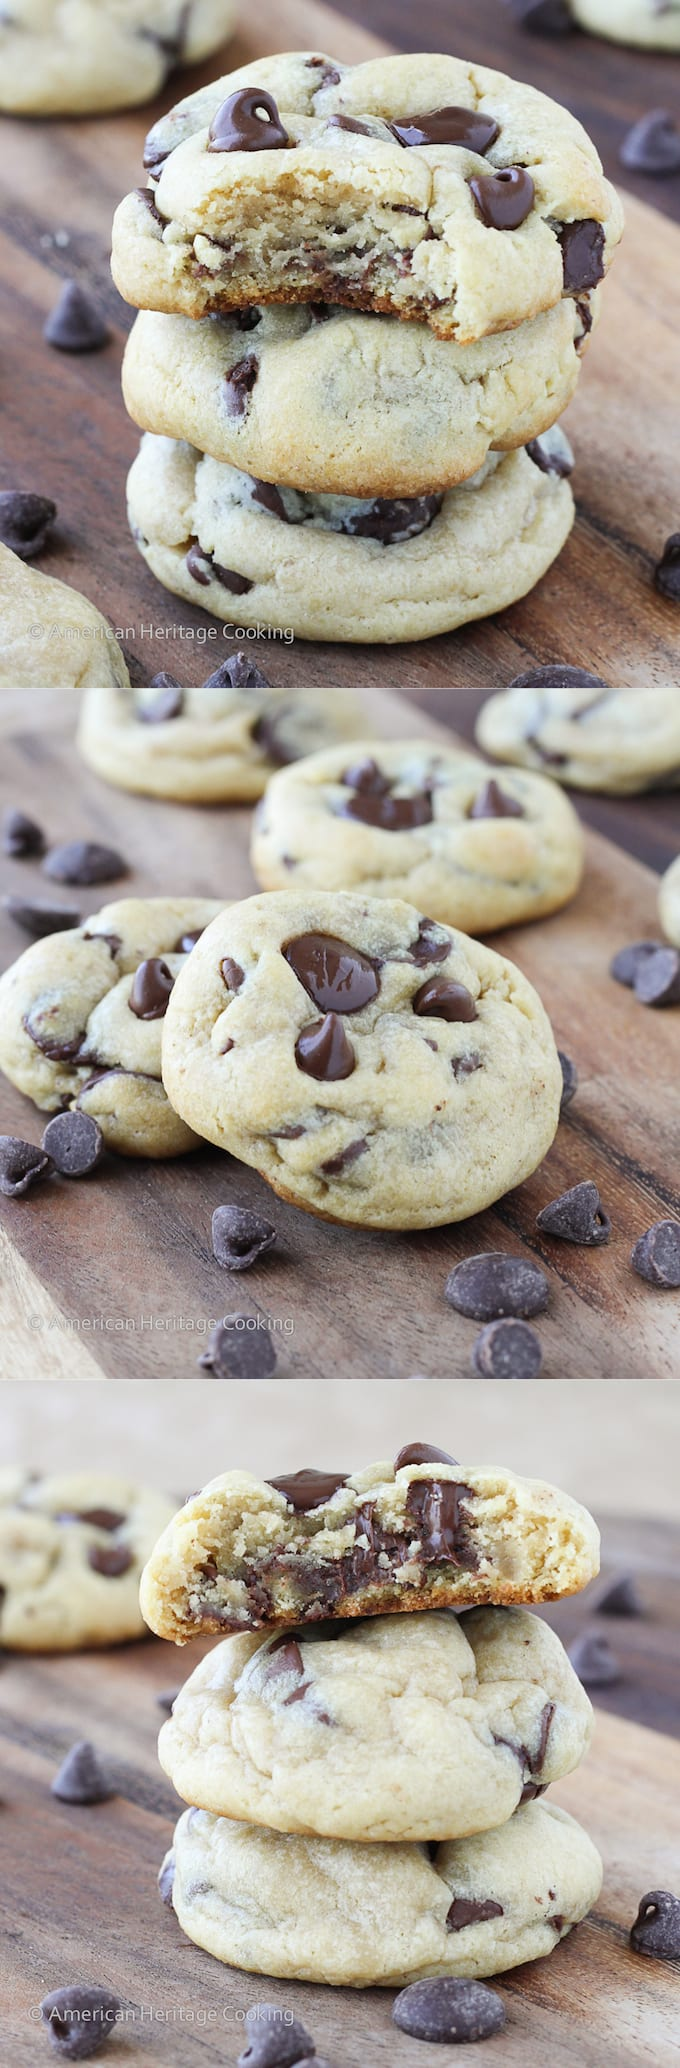 American chocolate chips cookies recipes